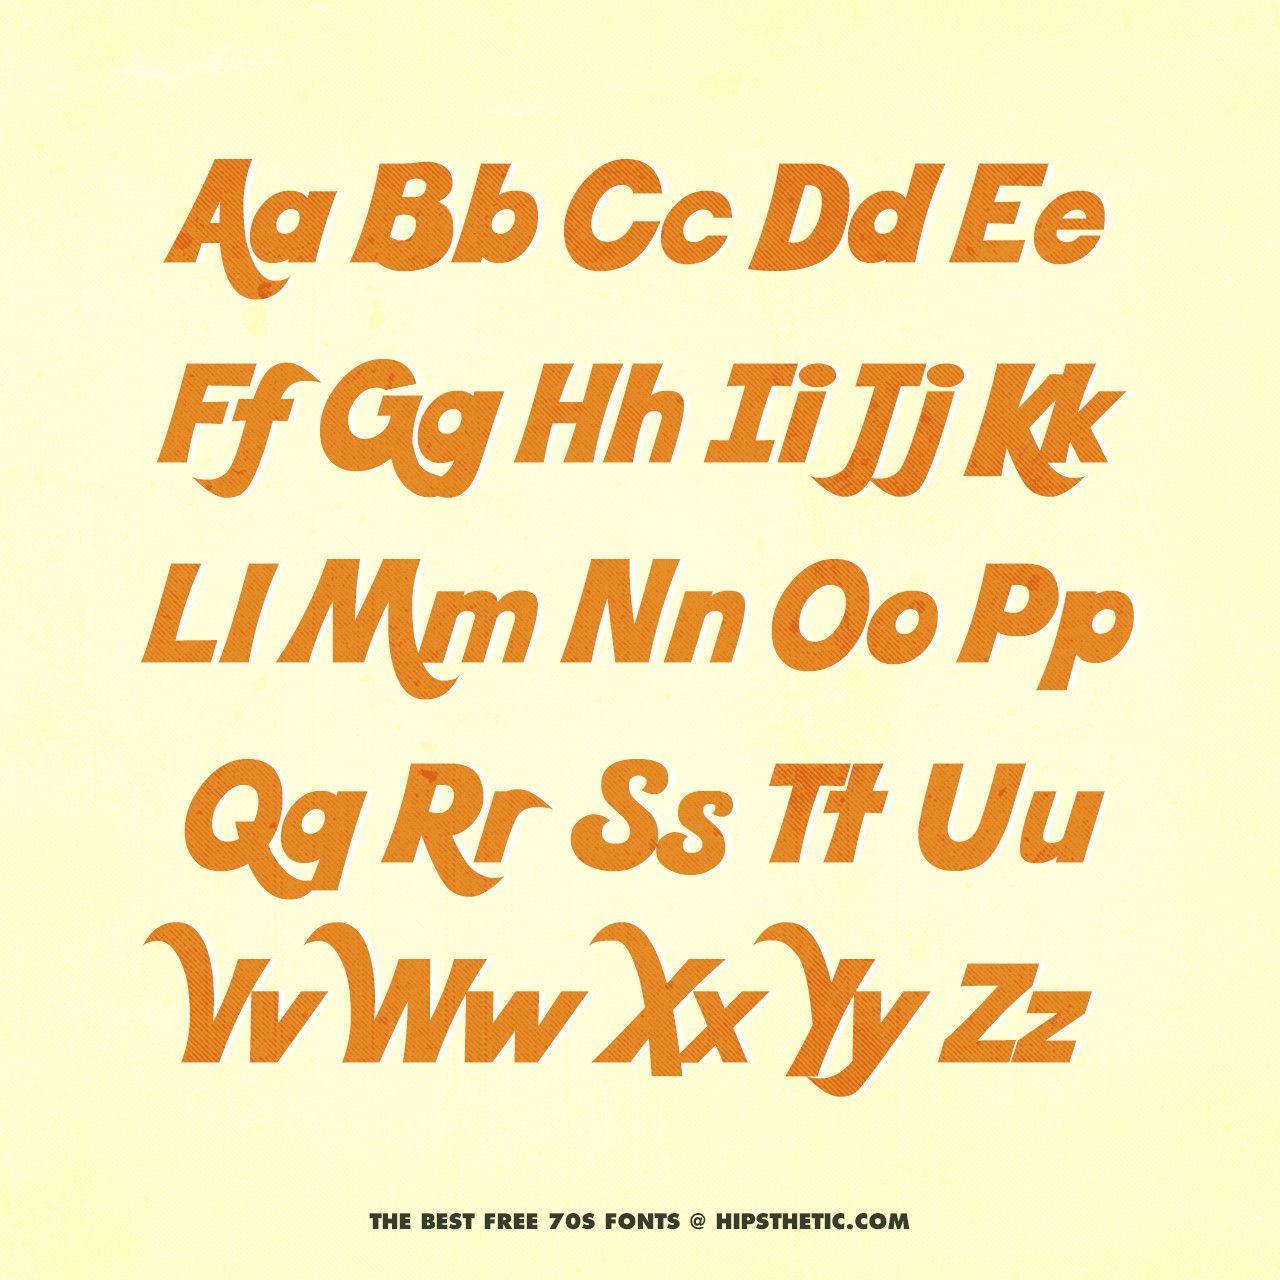 The 12 Best Free 70s Fonts Hipsthetic Free 70s Fonts Aesthetic Fonts Funky Fonts